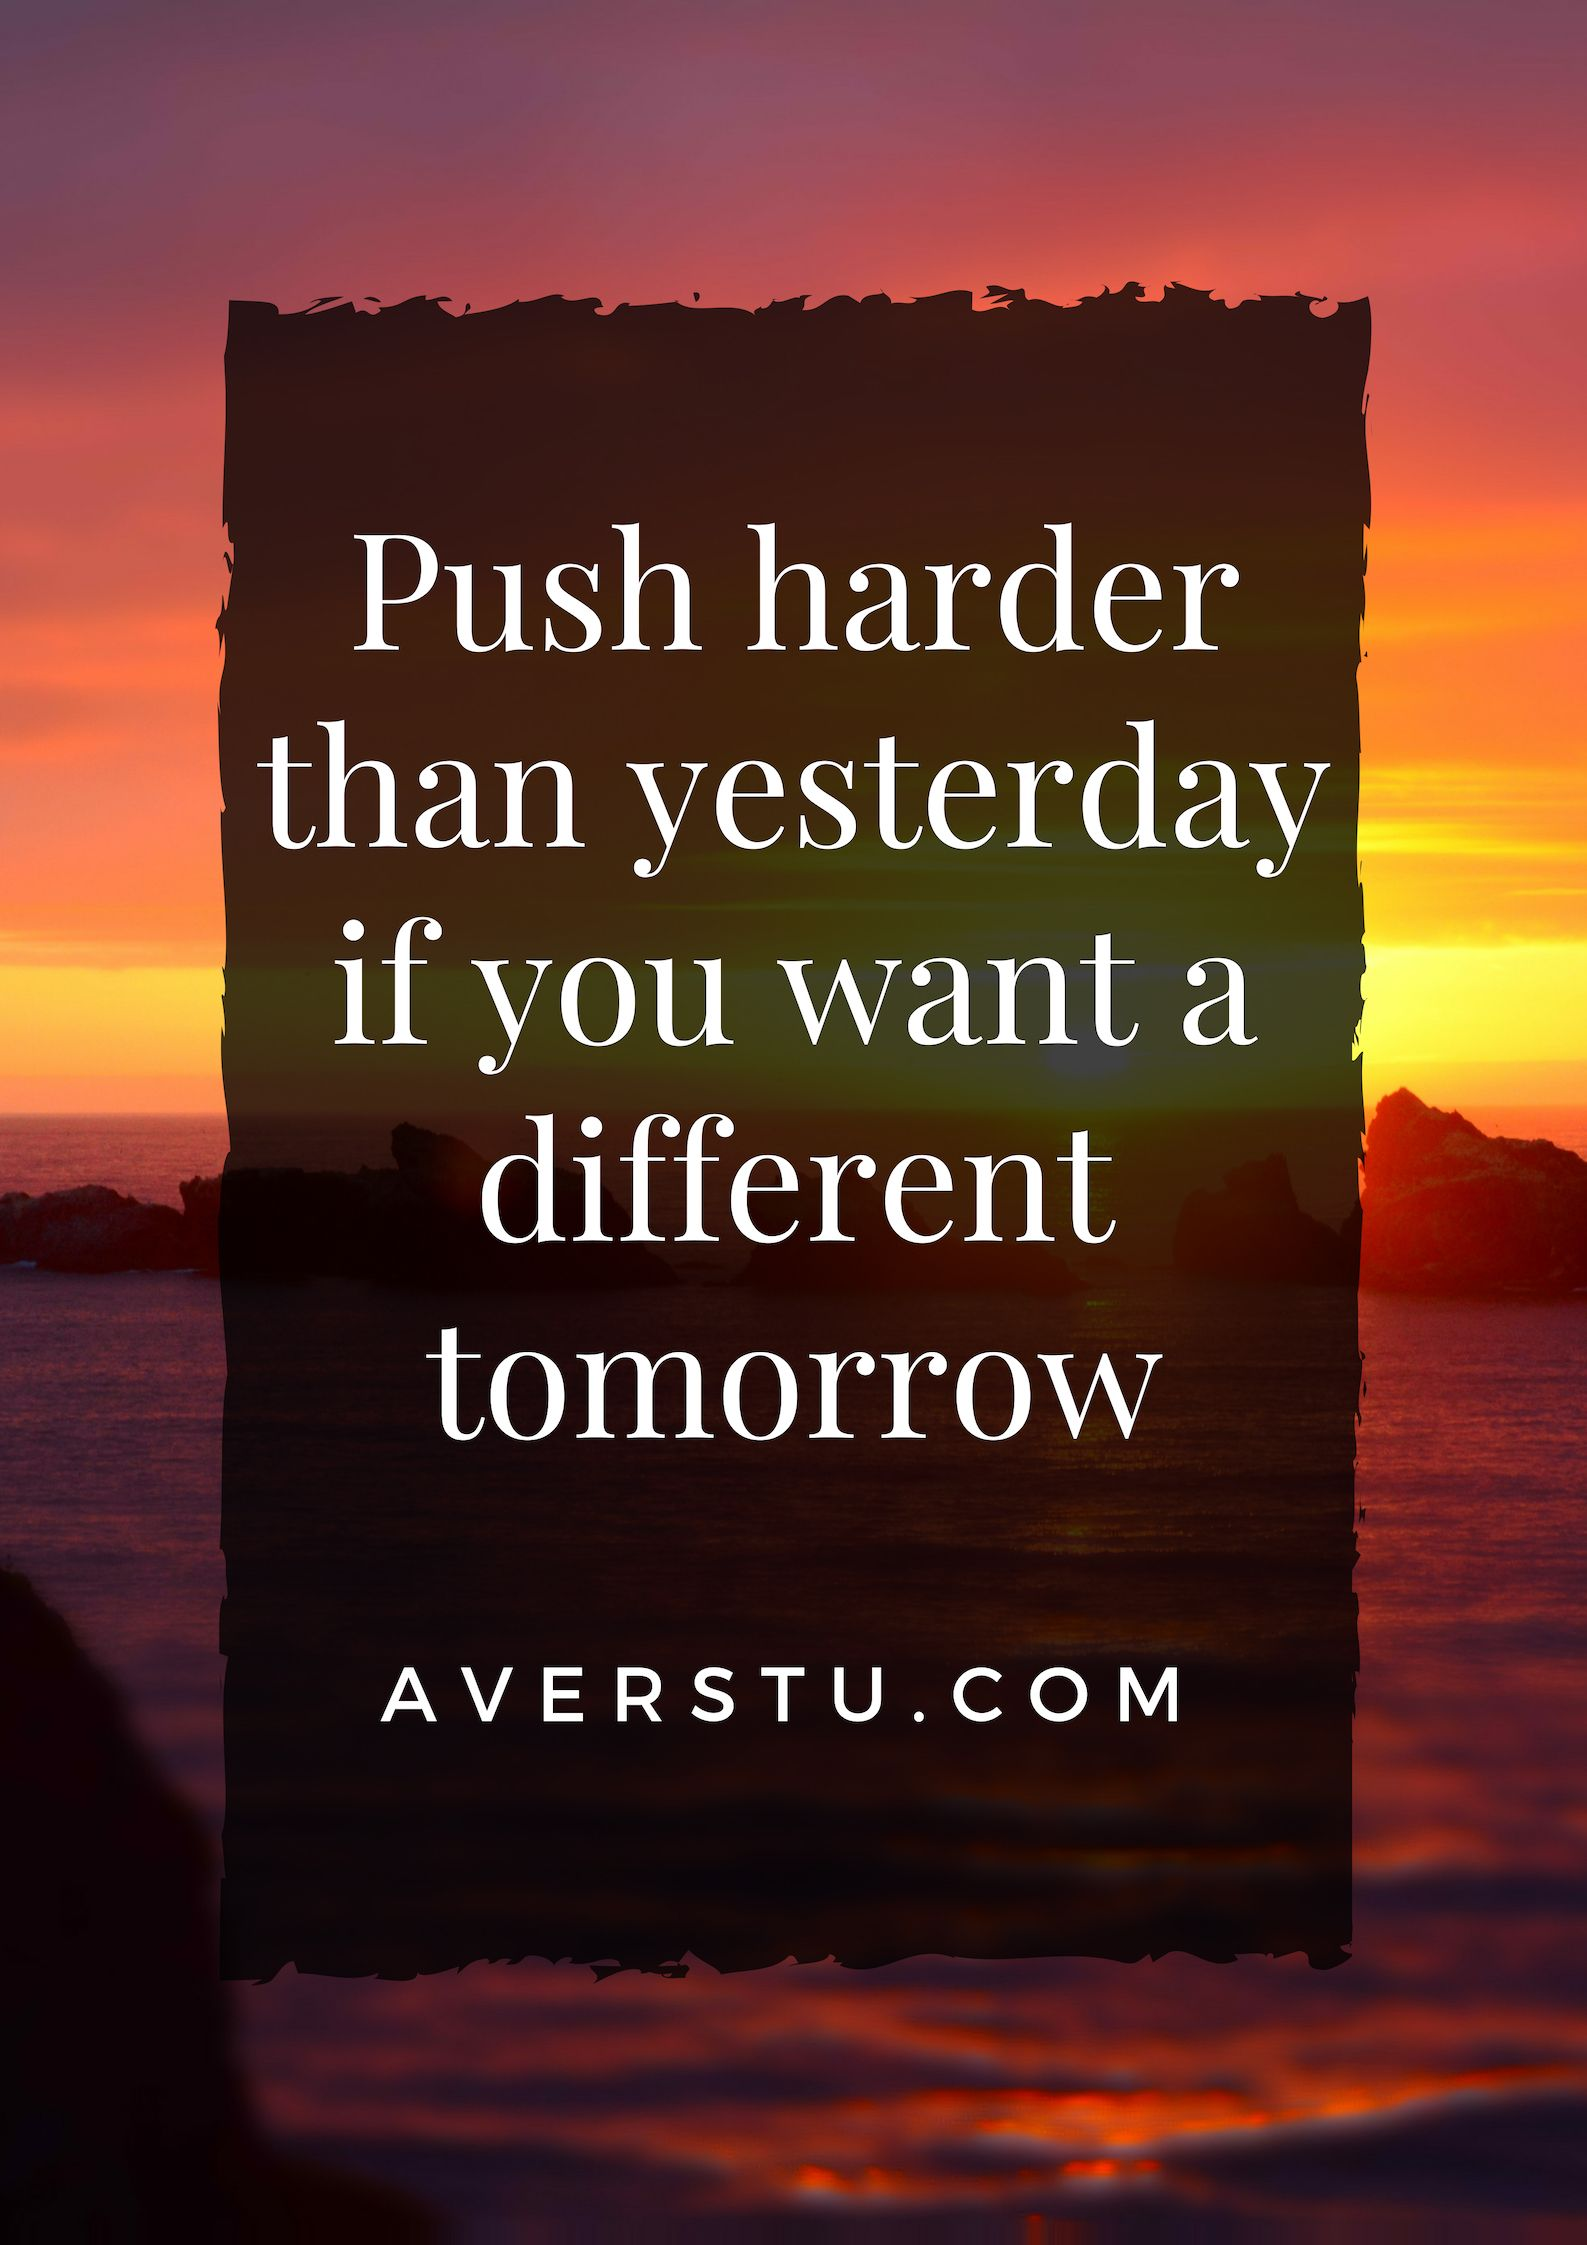 Today Tomorrow 25 Fearless Motivational Quotes That Will Move You Quotes And Sayings By Aver Opportunity Quotes Great Day Quotes Chance Quotes